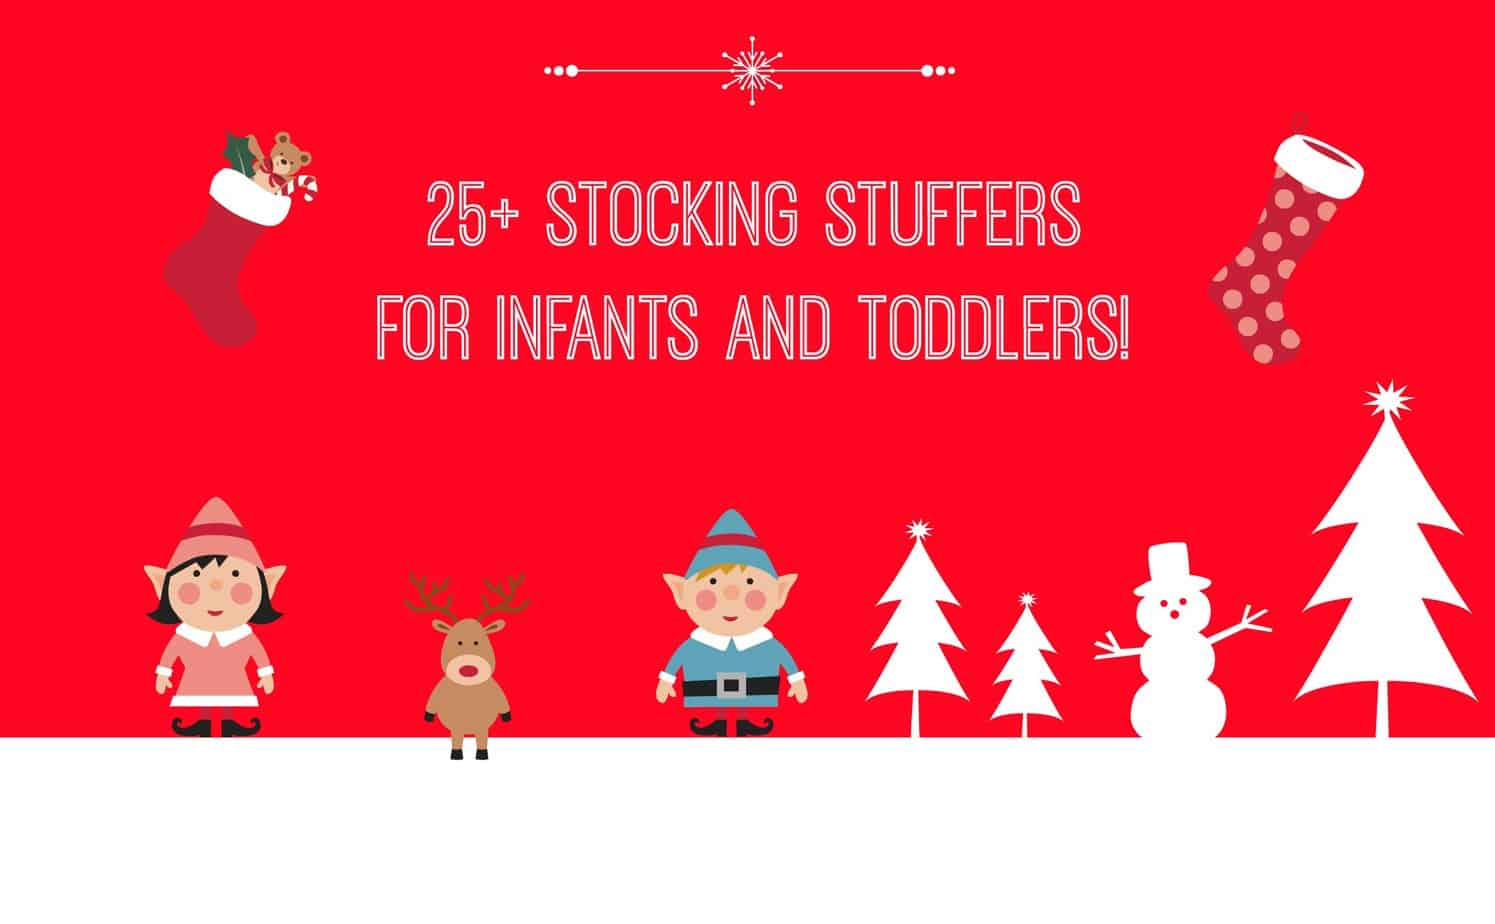 25+ Stocking Stuffers for Infants and Toddlers! 9